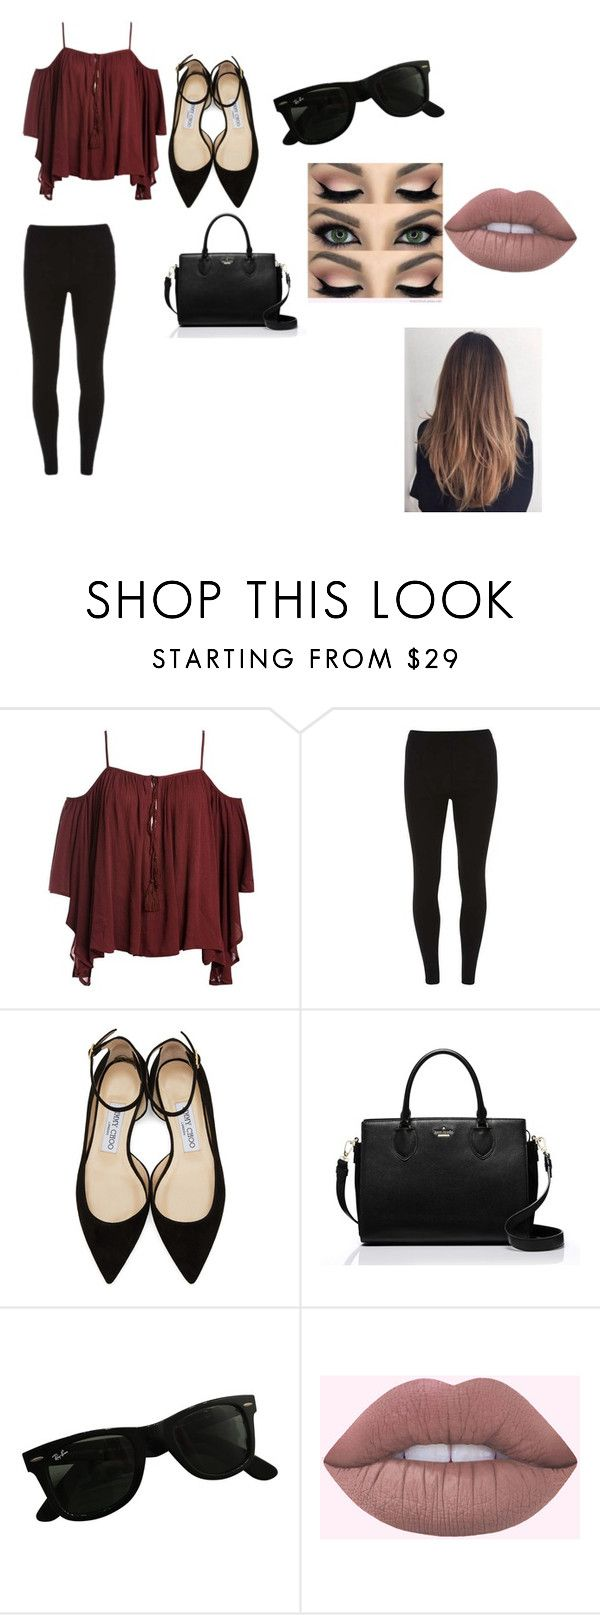 """Untitled #22"" by julia-nakandakari-japa ❤ liked on Polyvore featuring Dorothy Perkins, Jimmy Choo, Kate Spade and Ray-Ban"